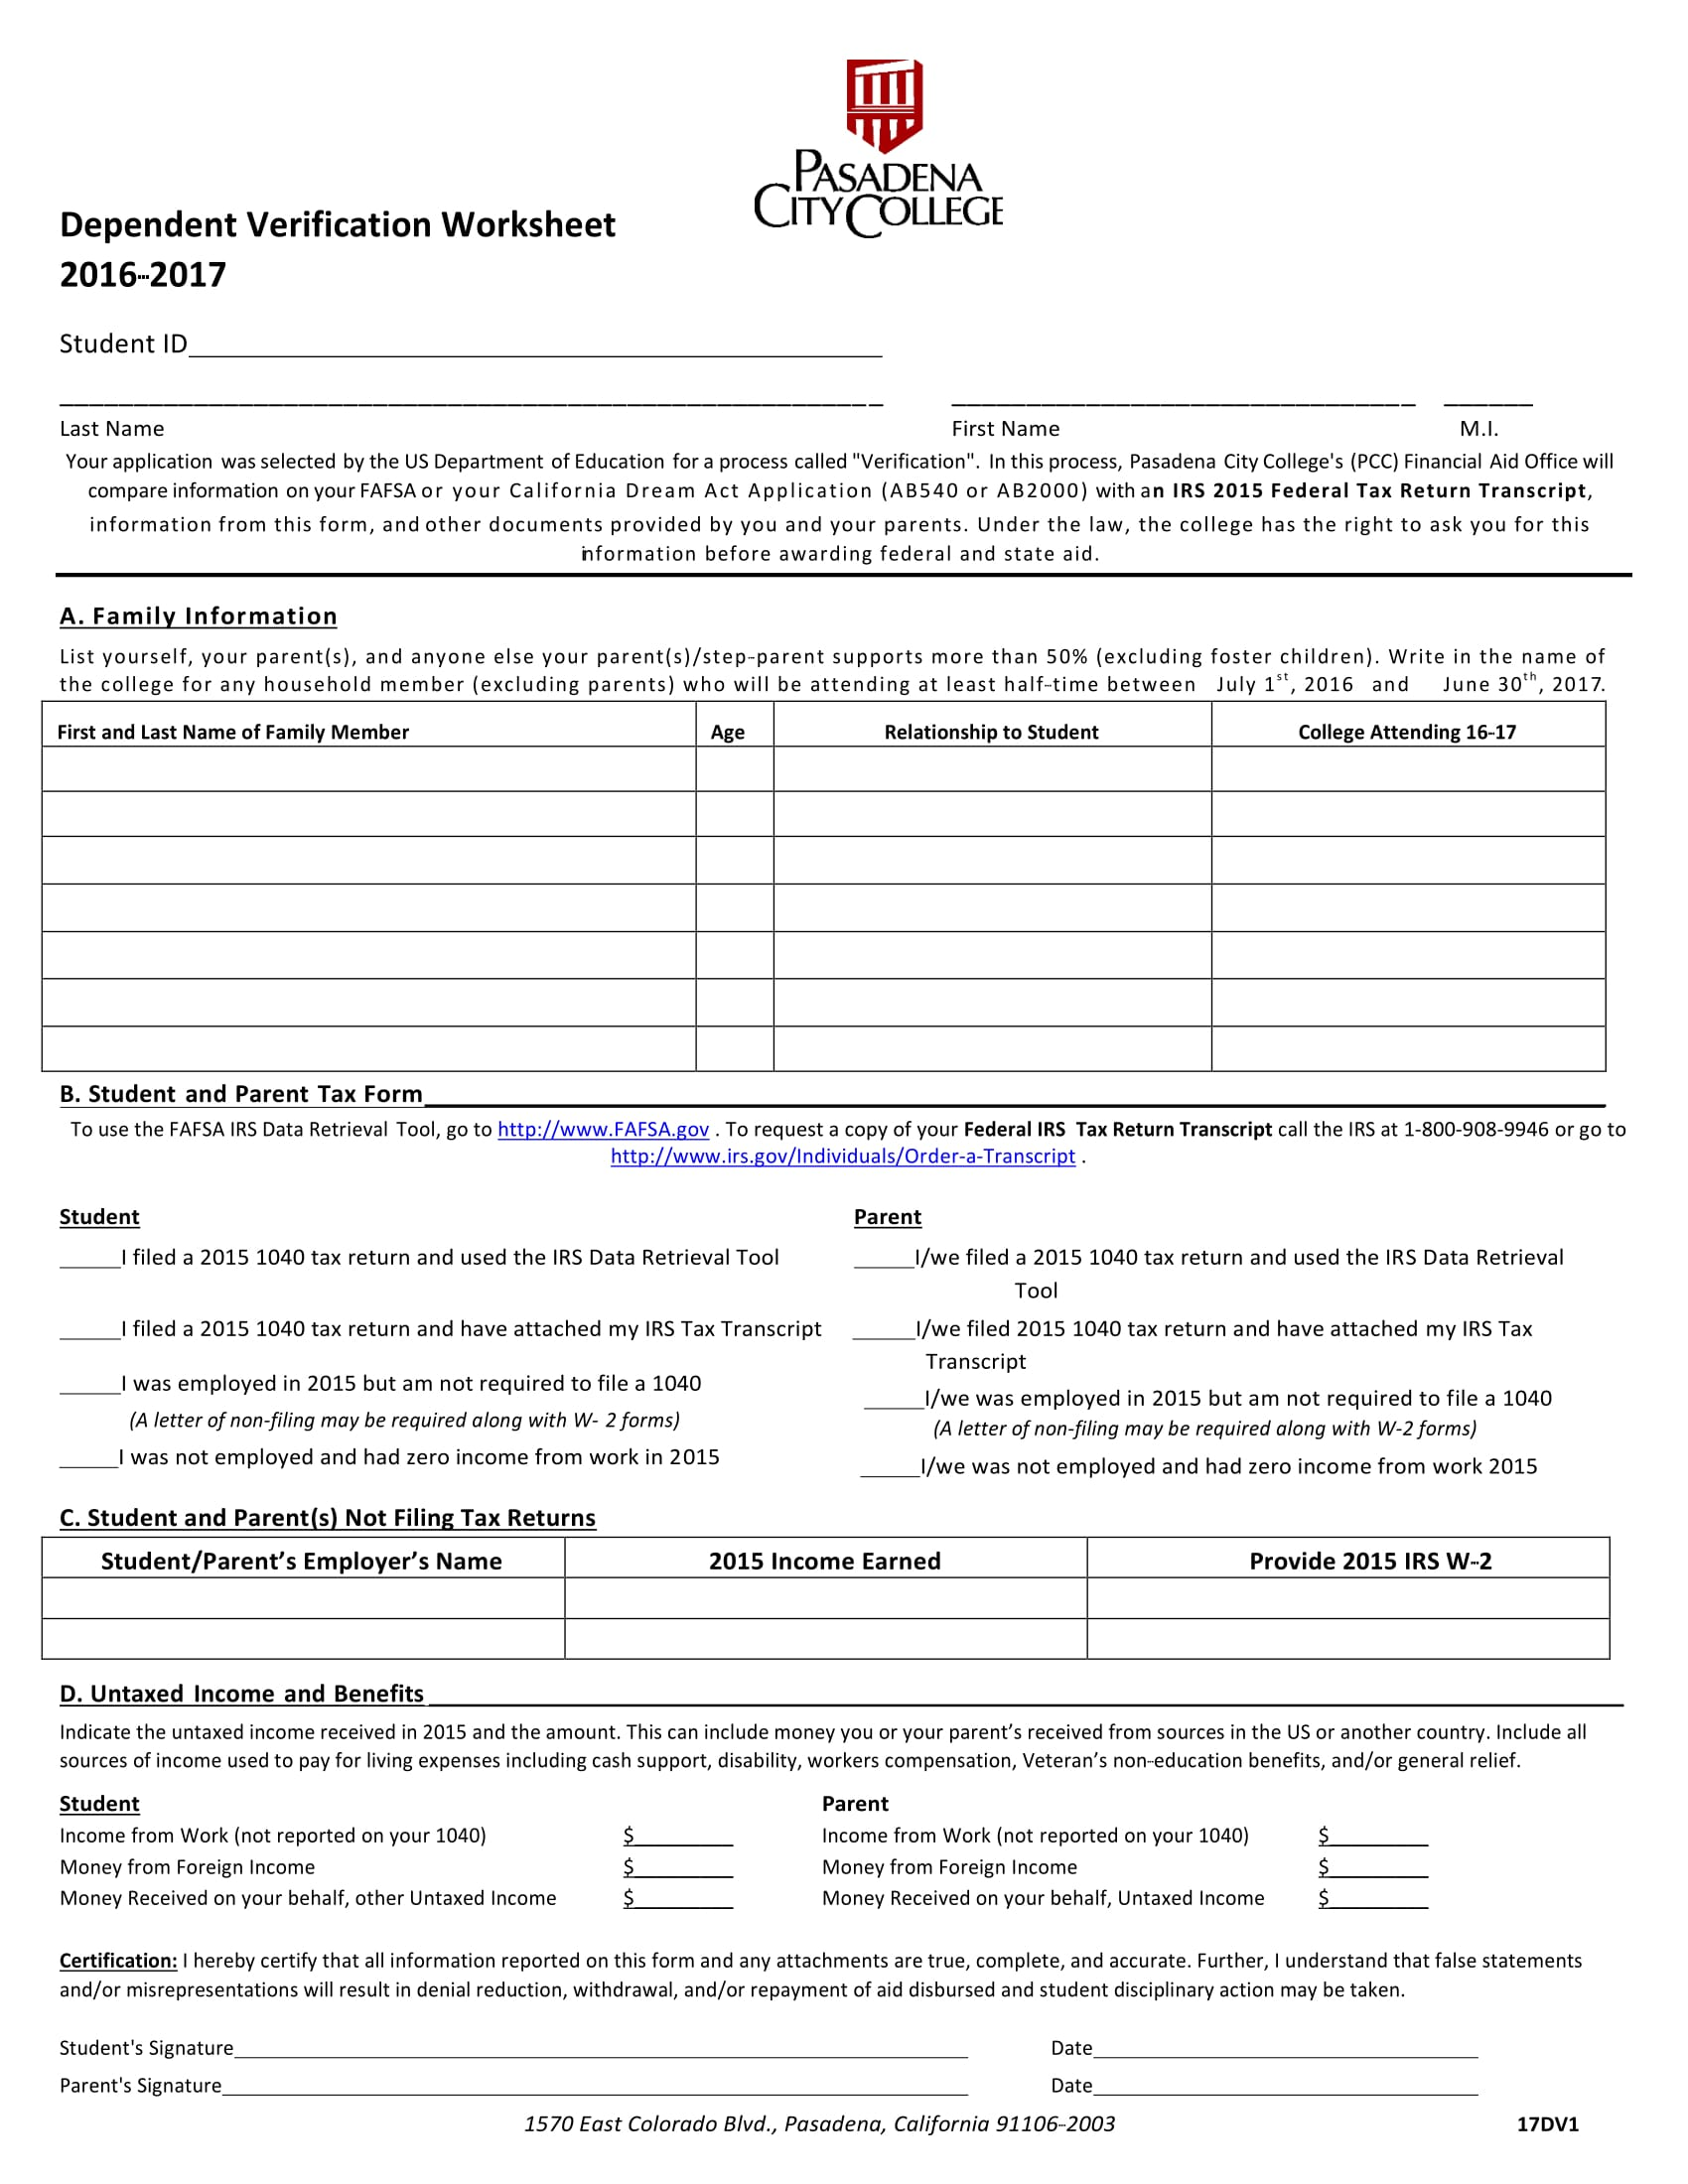 Worksheets Dependant Verification Worksheet 7 steps in filling out a dependent verification form college worksheet form